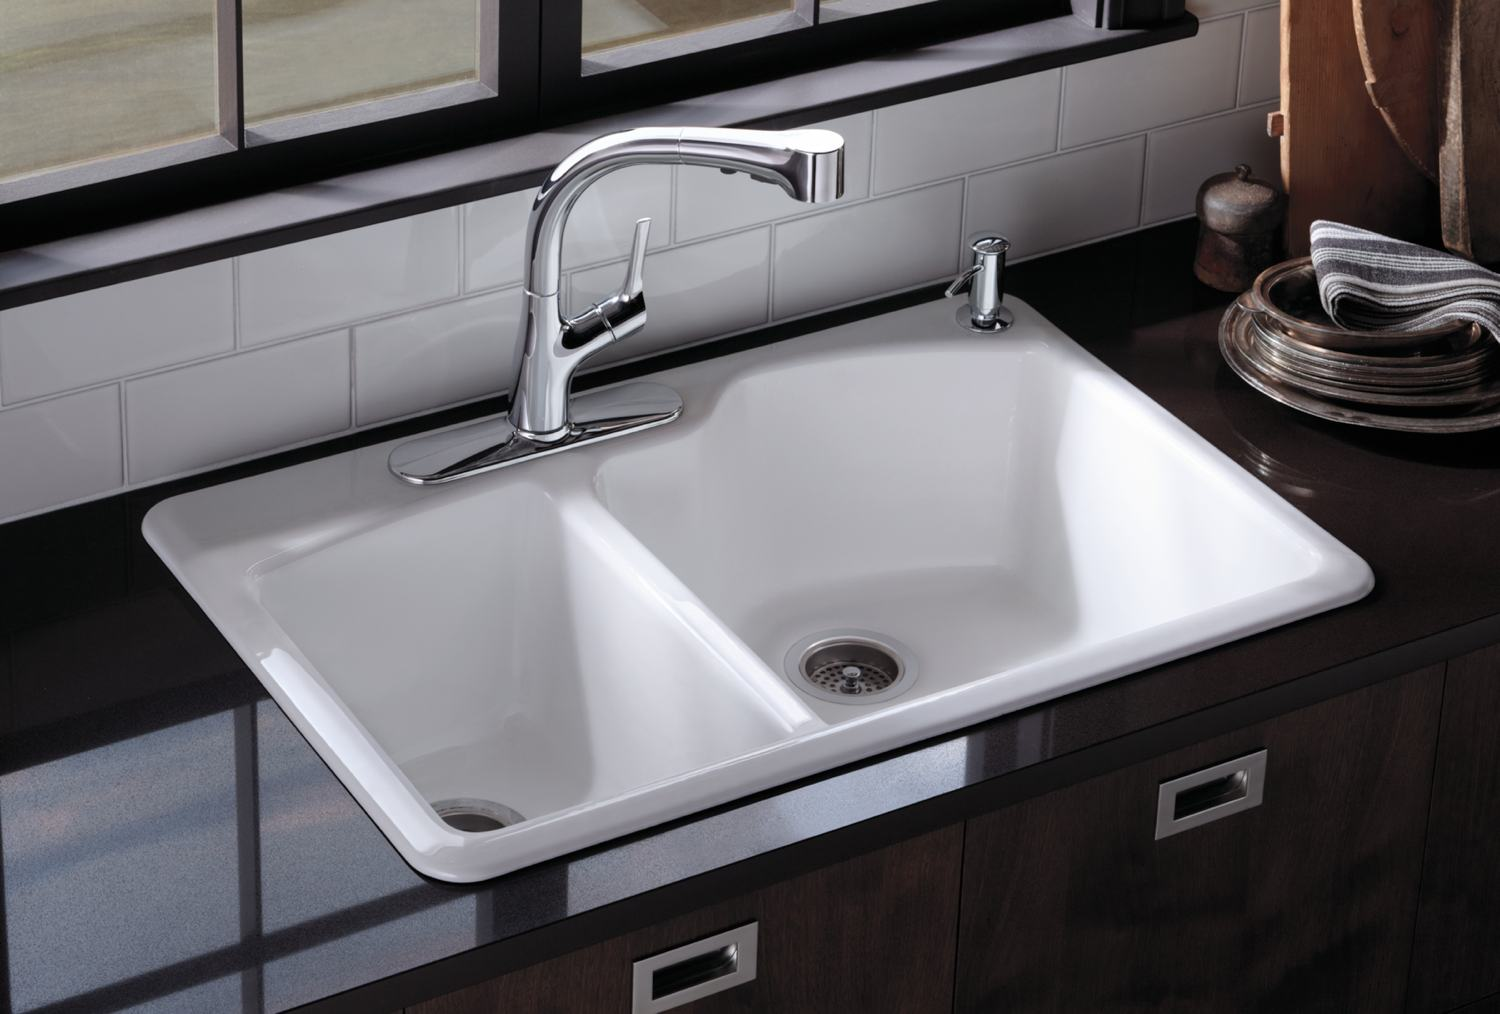 Amazon Kitchen Faucet Amazon Com Kohler K 5870 2 0 Wheatland Self Rimming